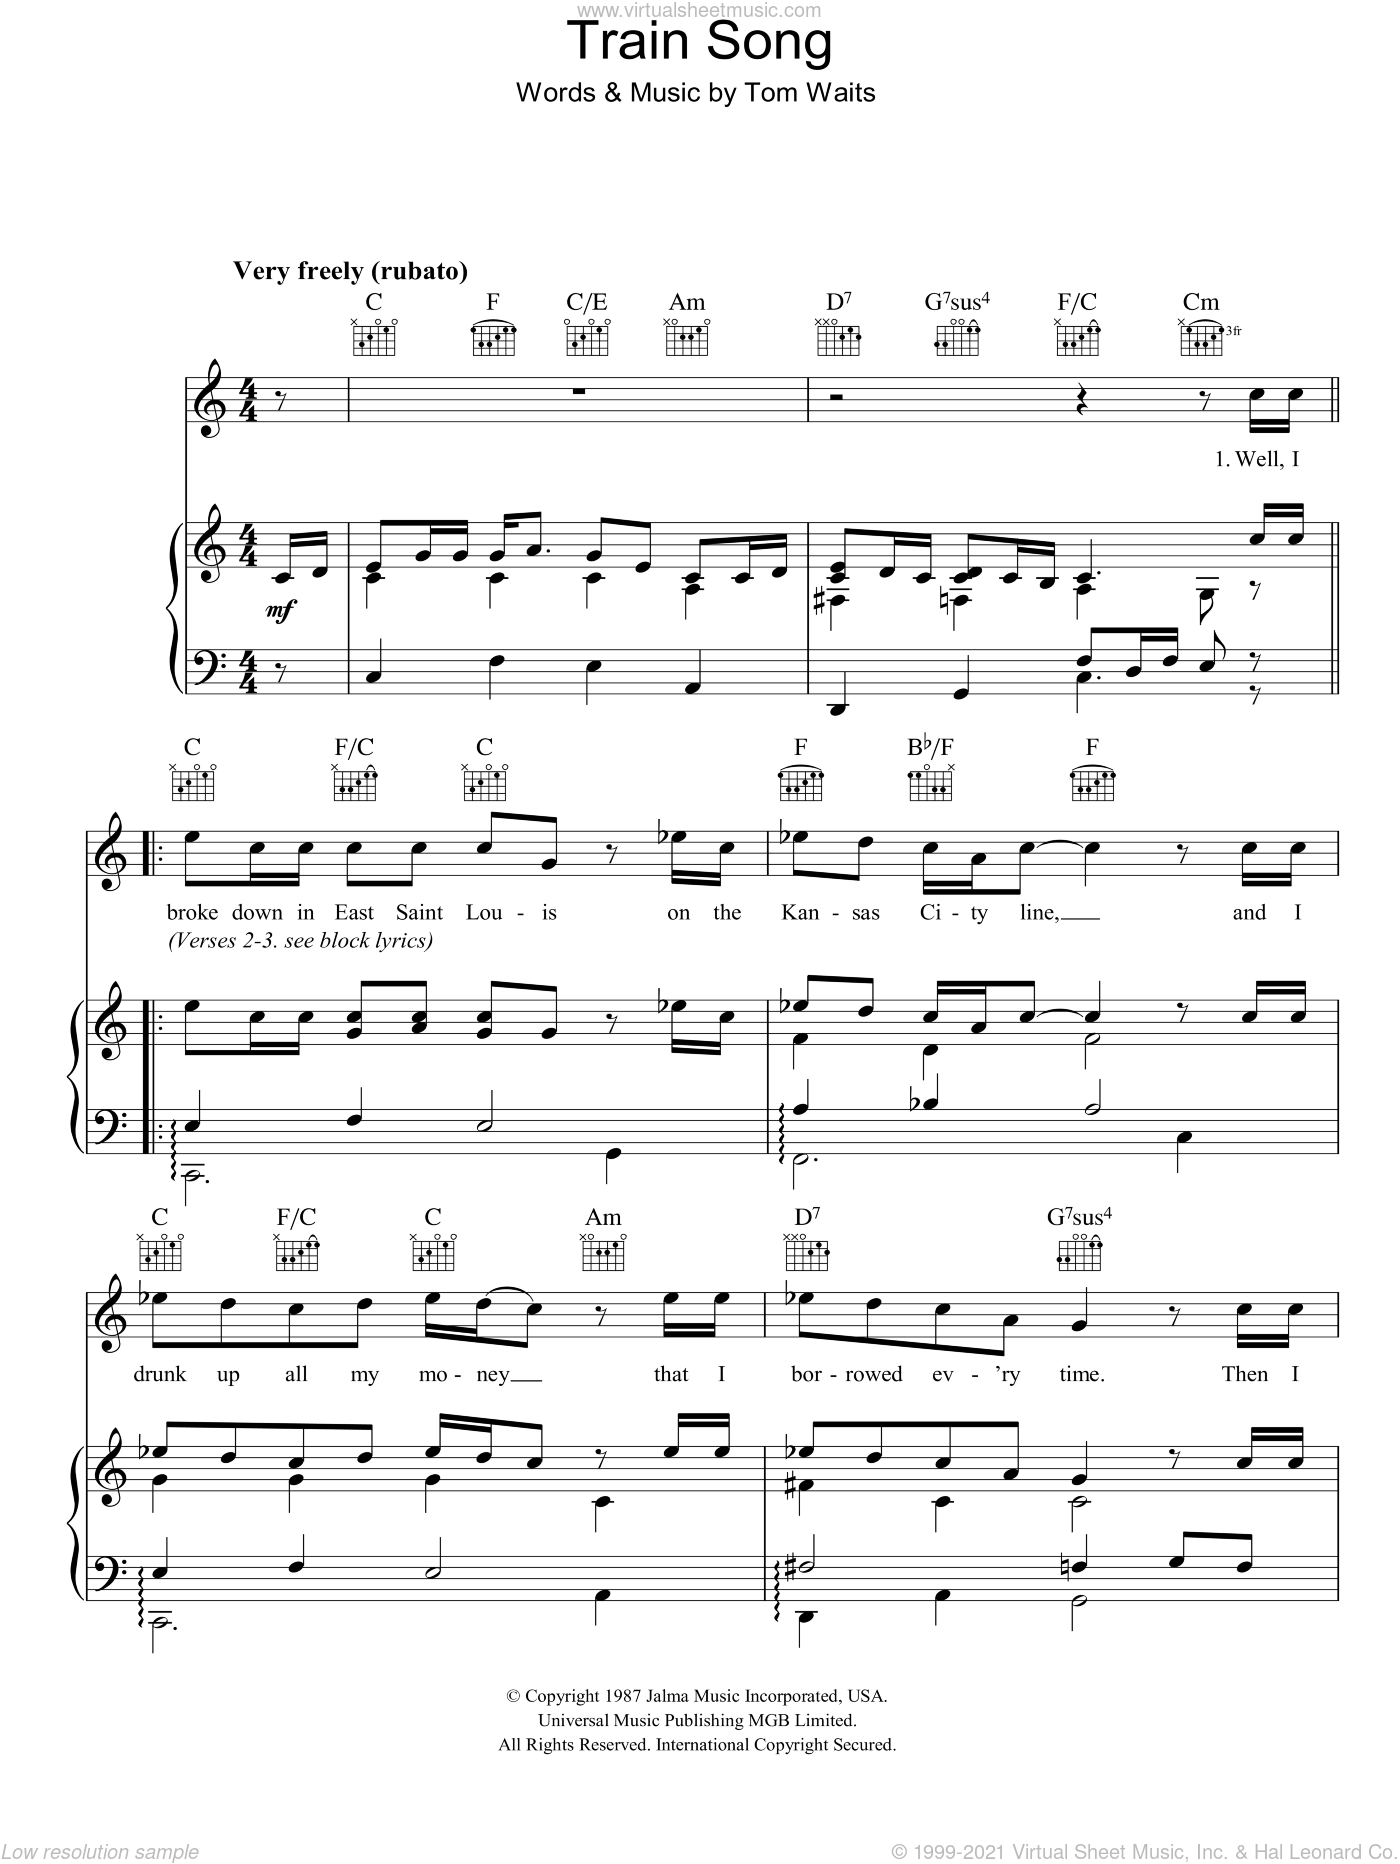 Train Song sheet music for voice, piano or guitar by Tom Waits